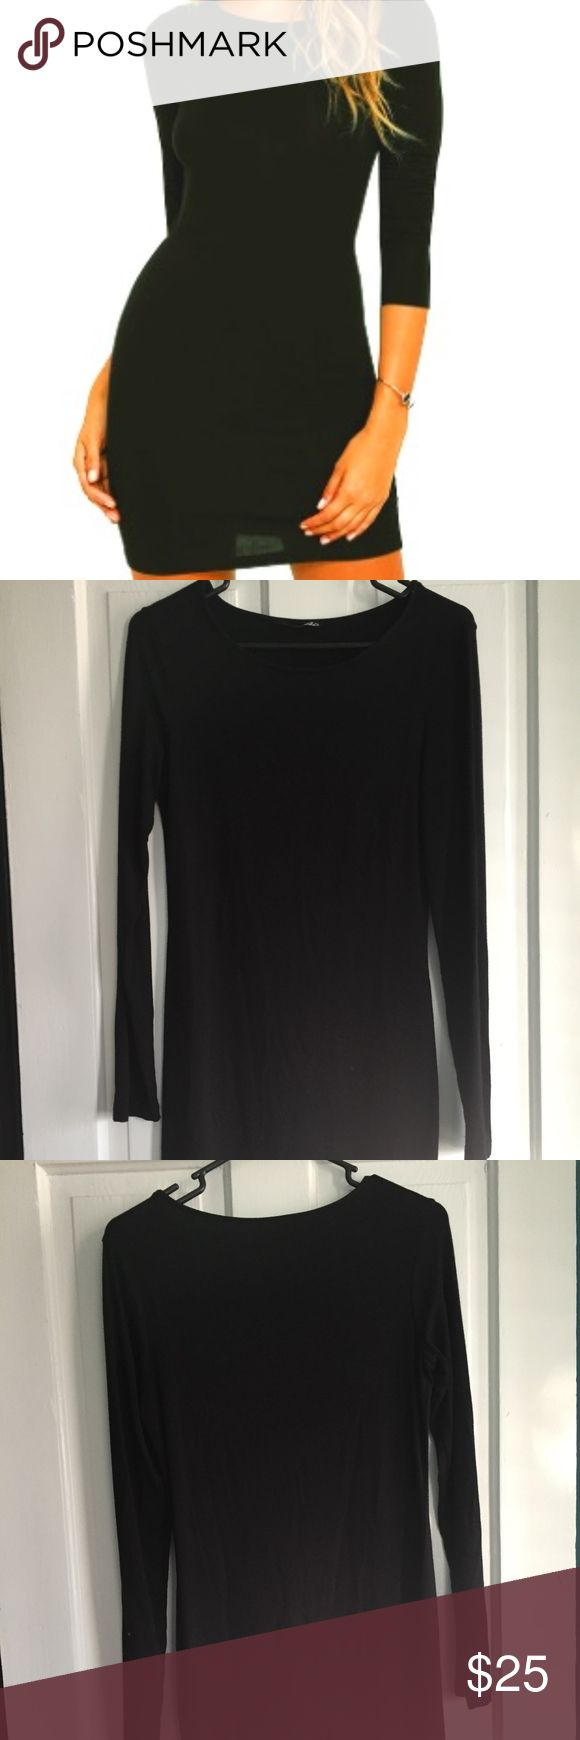 LuLu's Black Long Sleeve Dress Simple Long Sleeve Black Dress. First purchased from LuLu's. Perfect for women, ready for a date night out. It's a little long, so I would recommend buying if you have long legs. But if you want a more conservative dress - perfect for that too! Lulu's Dresses Long Sleeve